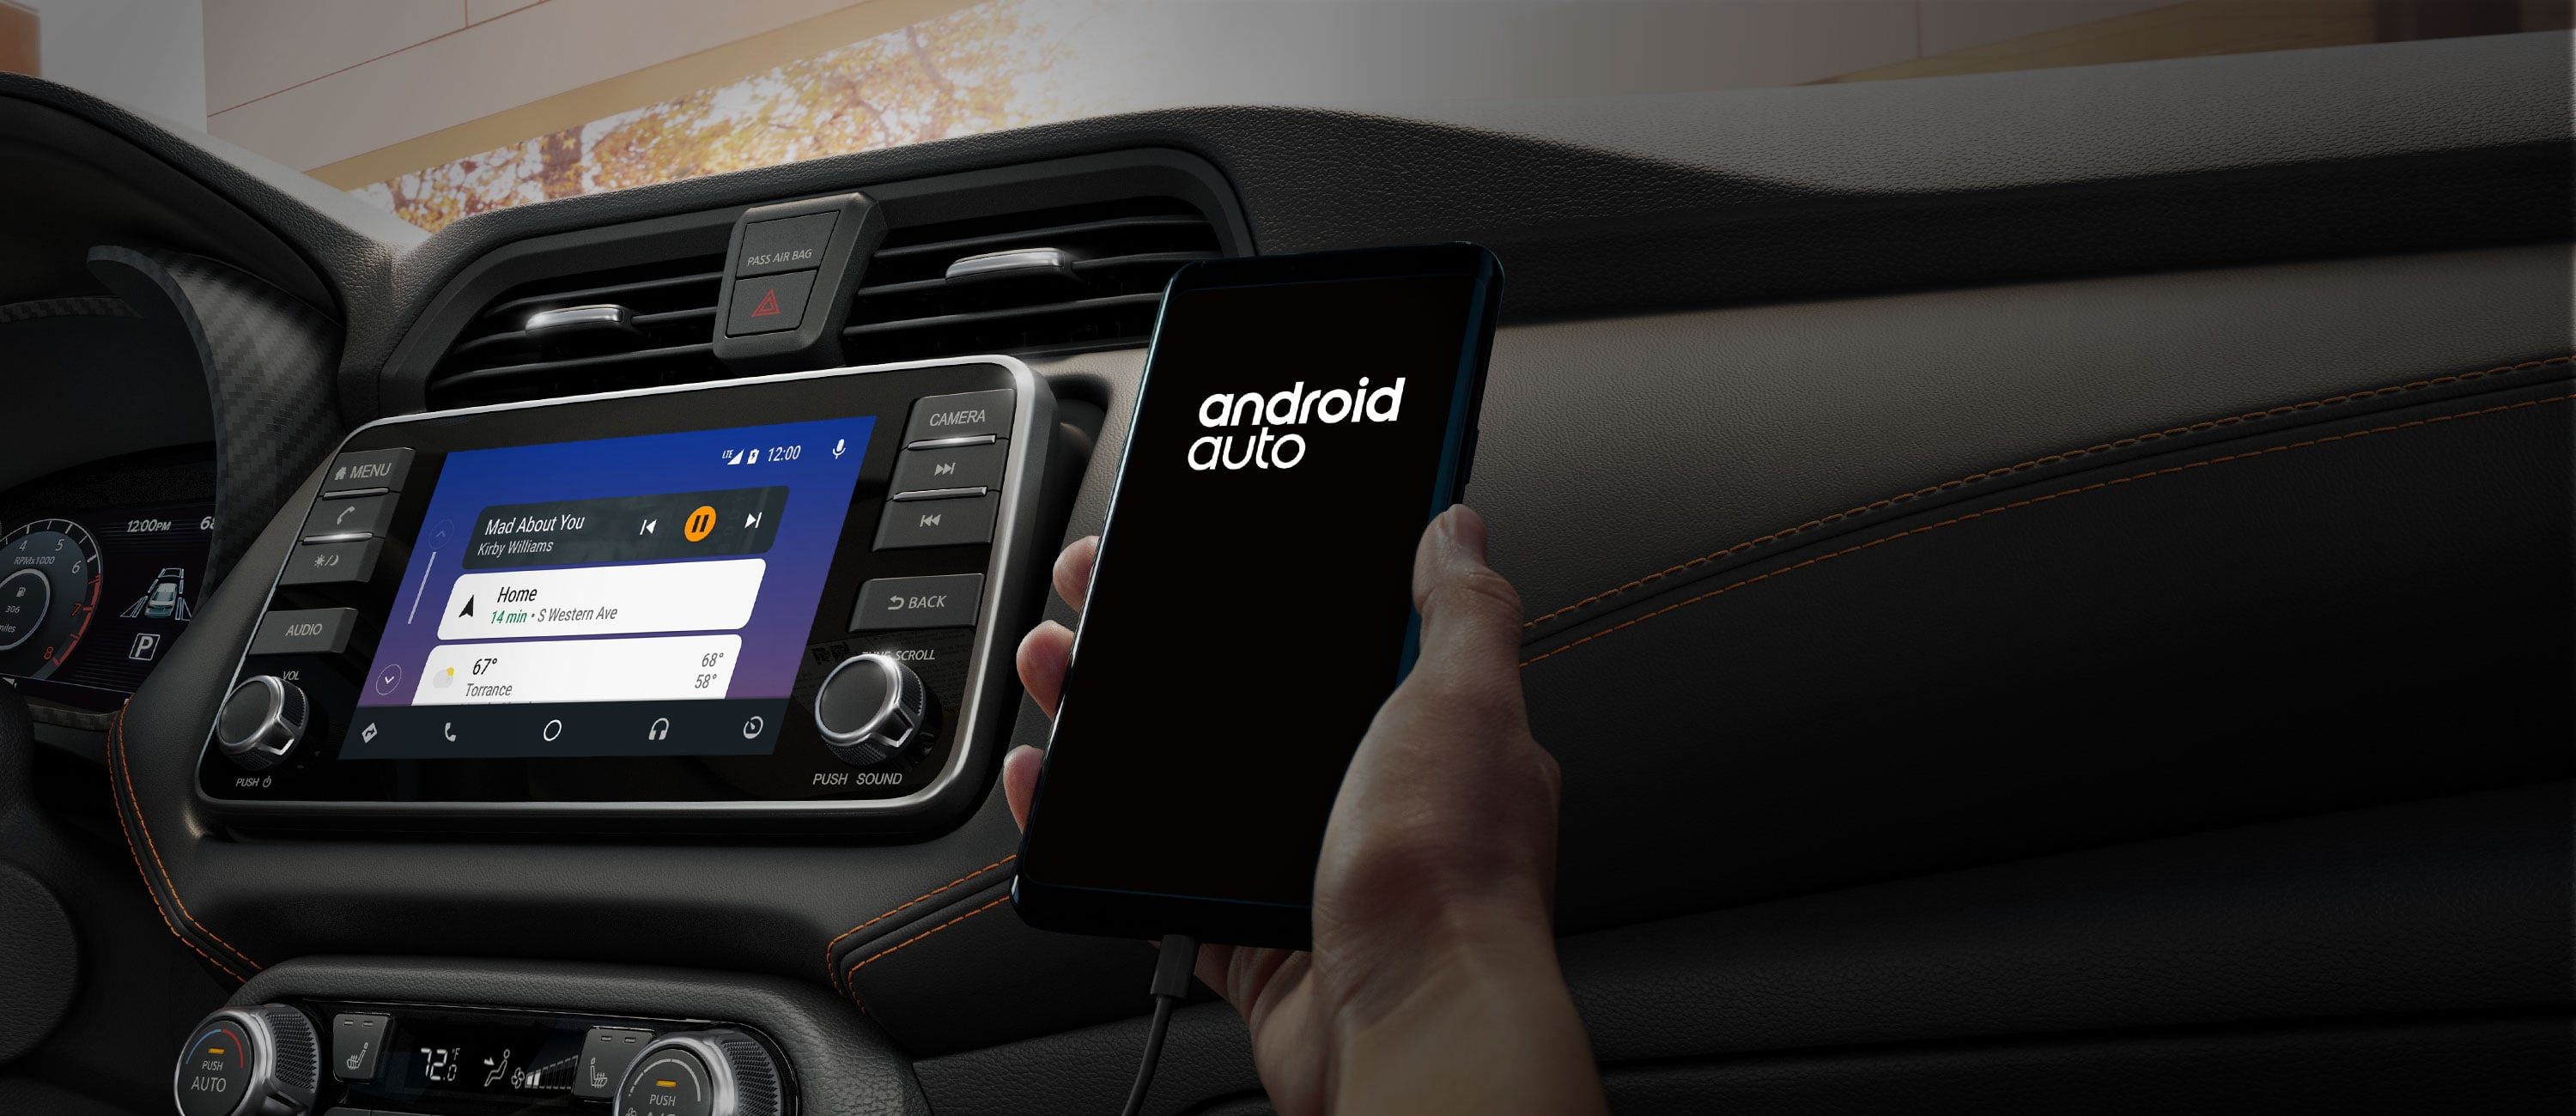 2020 Nissan Versa Connected Android Auto